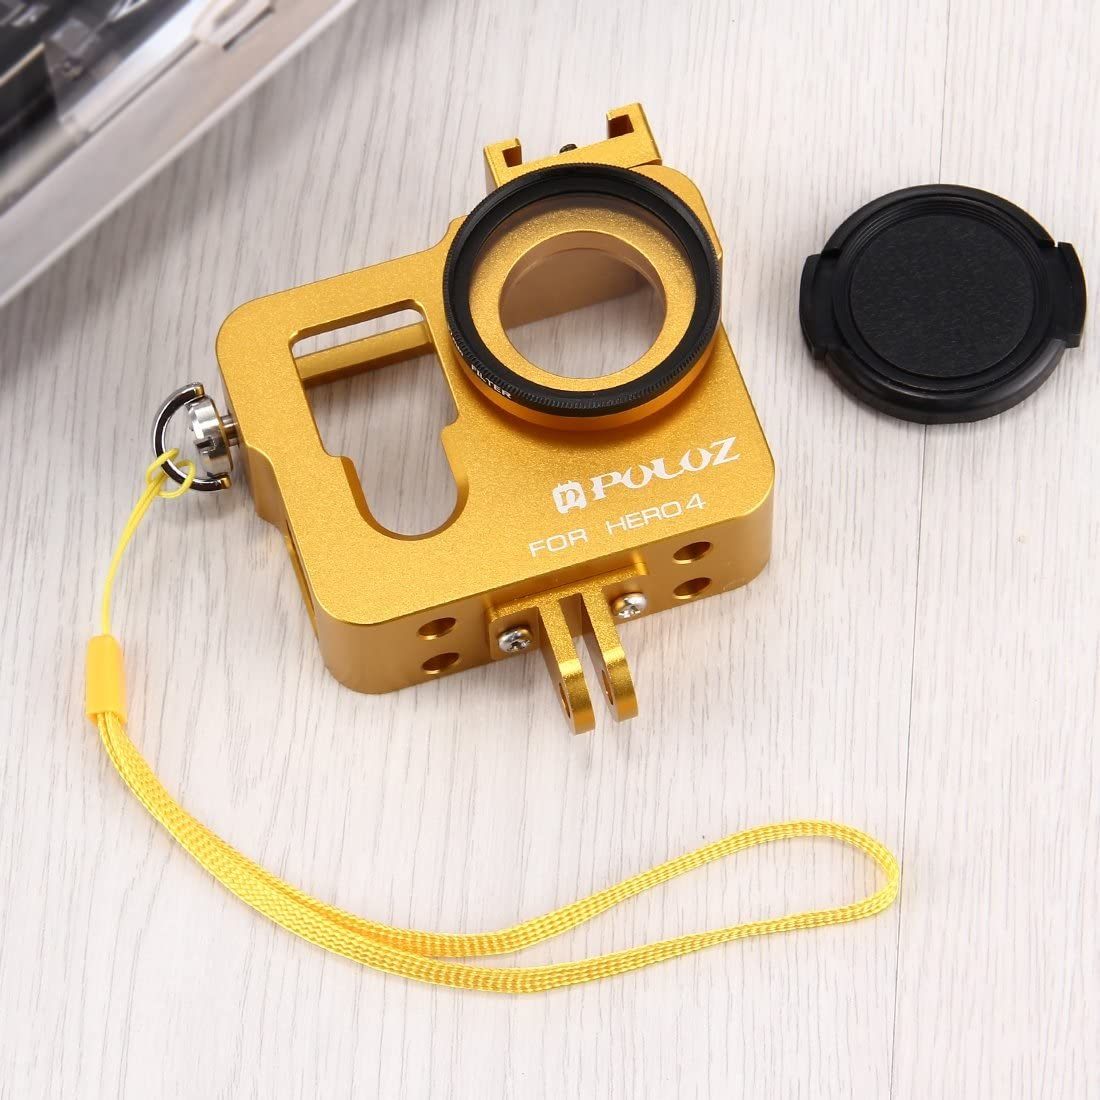 for DJI Gopro Action Camera Housing Shell CNC Aluminum Alloy Protective Cage with 37mm UV Lens Filter /& Lens Cap for GoPro HERO4 Color : Gold Black